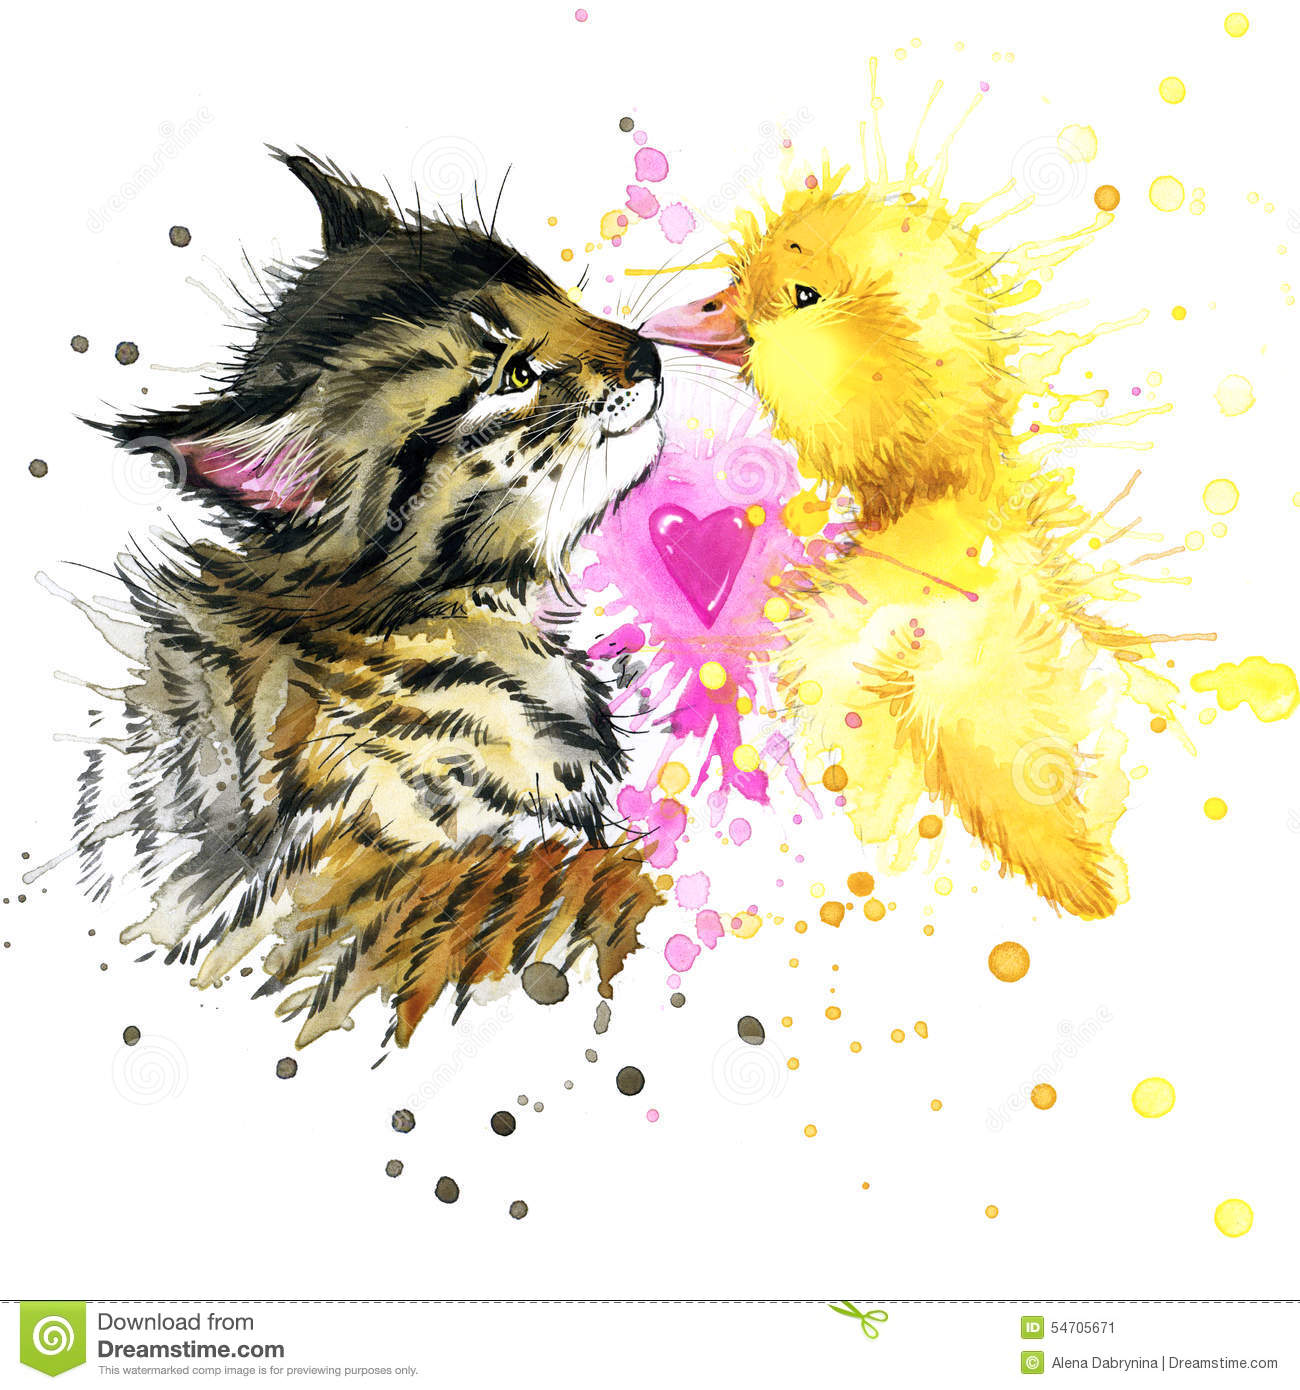 Illustration dr le d 39 aquarelle de chaton et de canard - Illustration canard ...